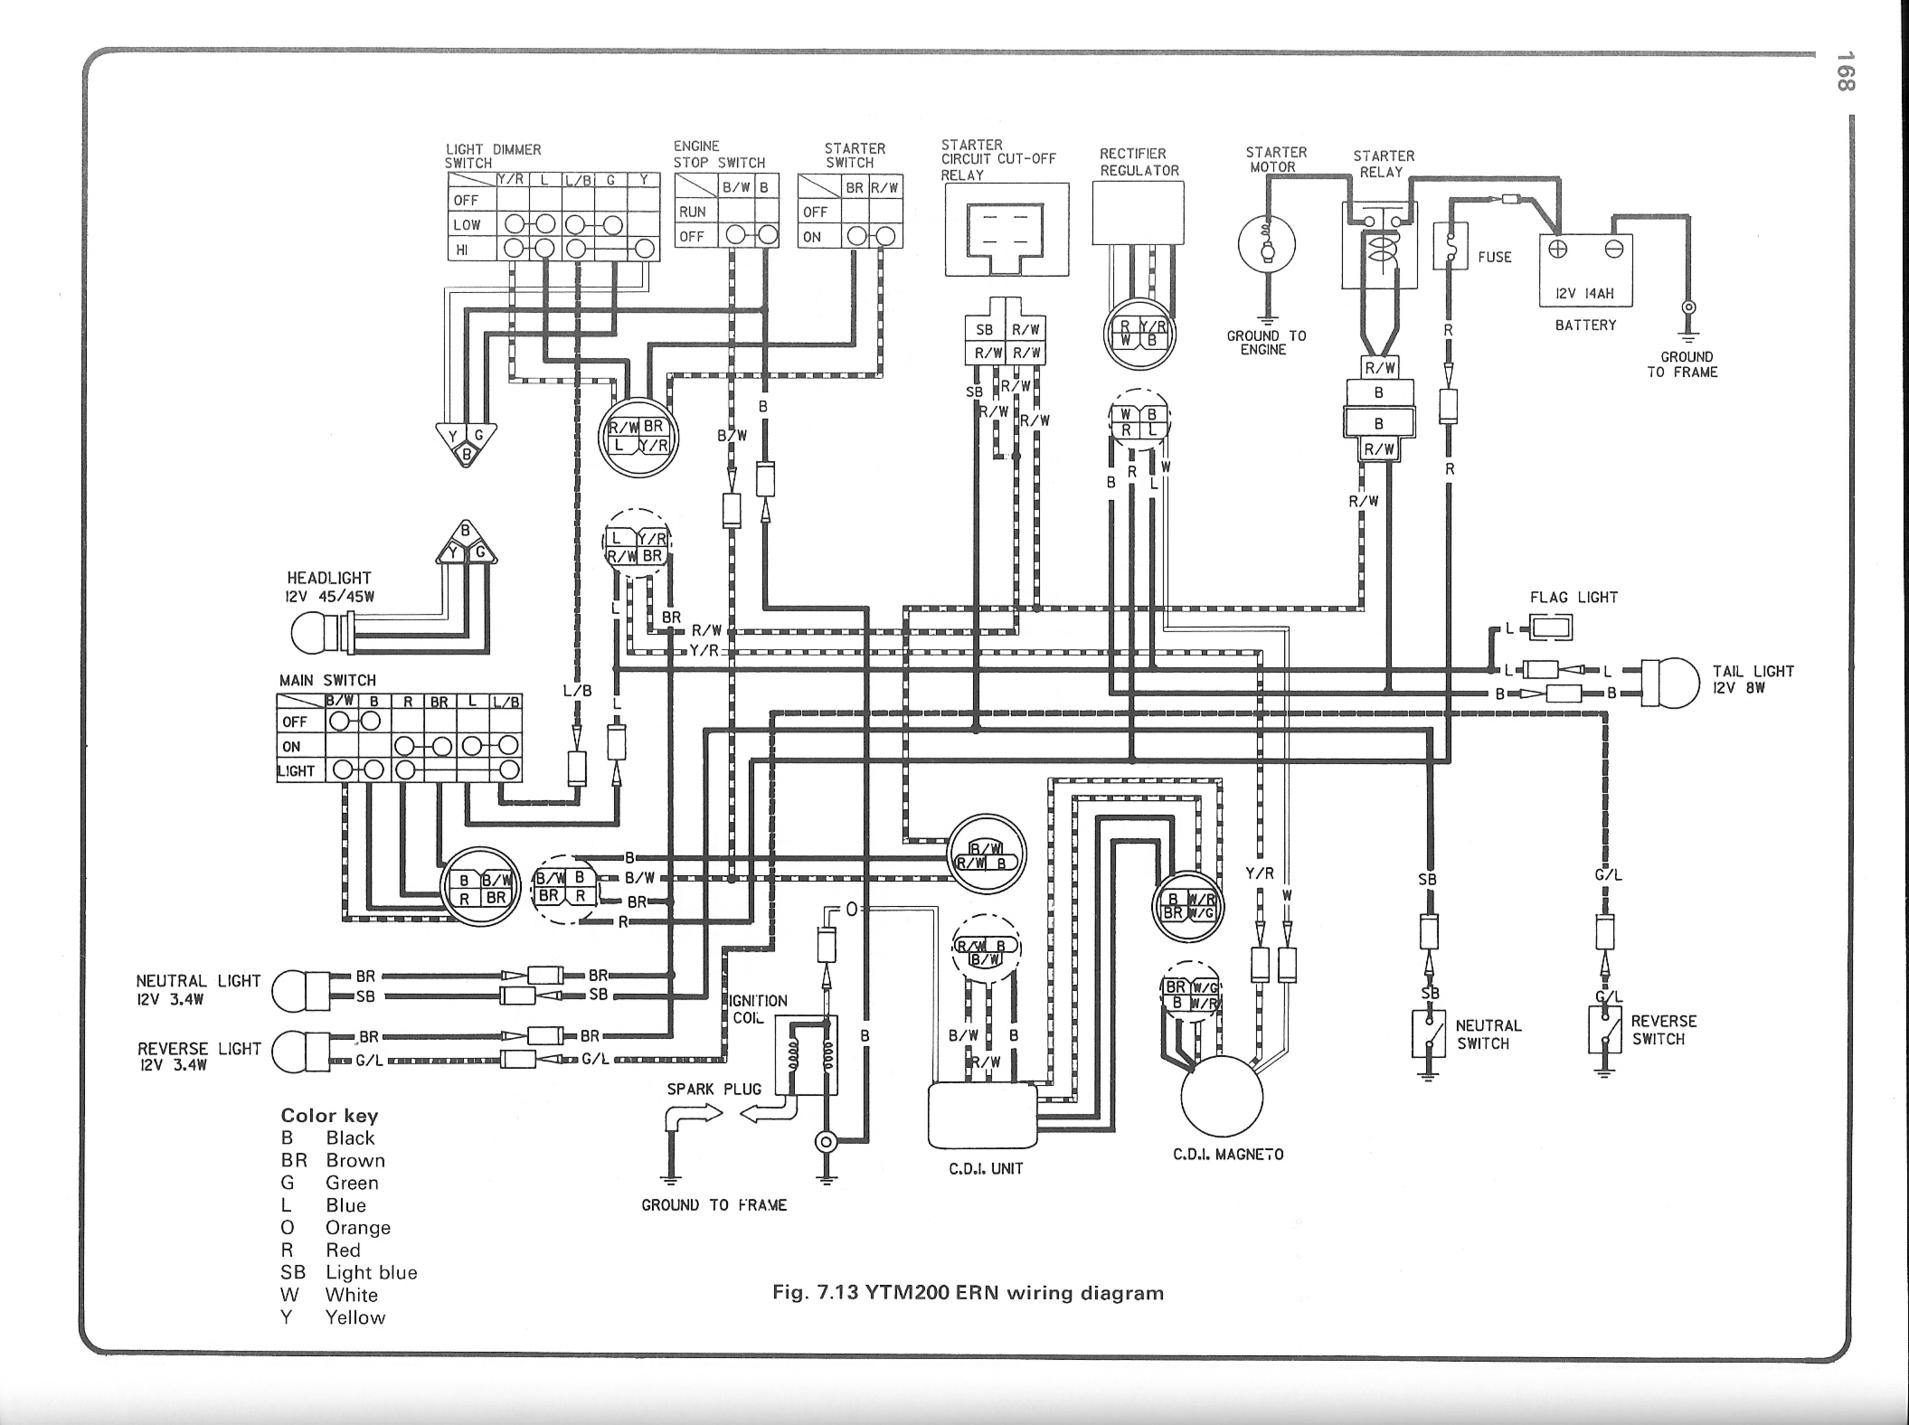 lifan 50cc wiring diagram wiring diagram lifan 125cc wiring diagram discover your